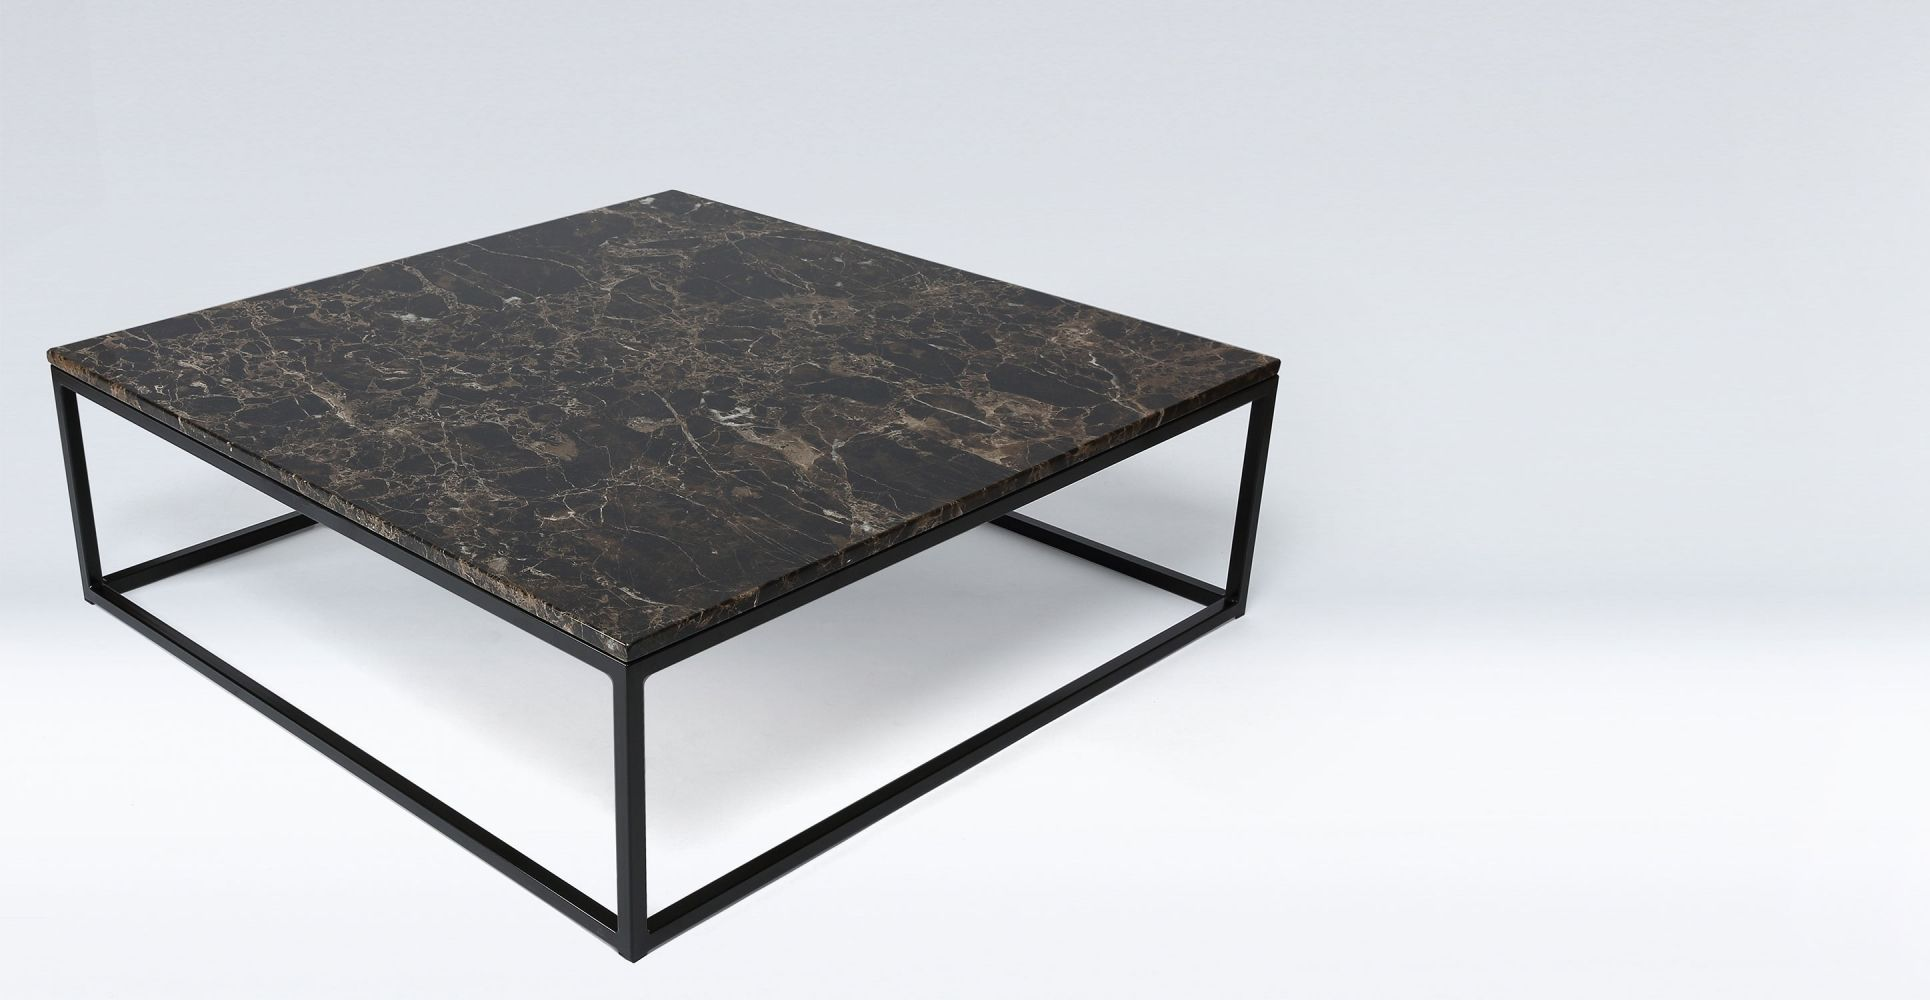 Table Basse En Marbre Table Basse Marbre Noir Metal Noir Smoke Table Basse Marbre